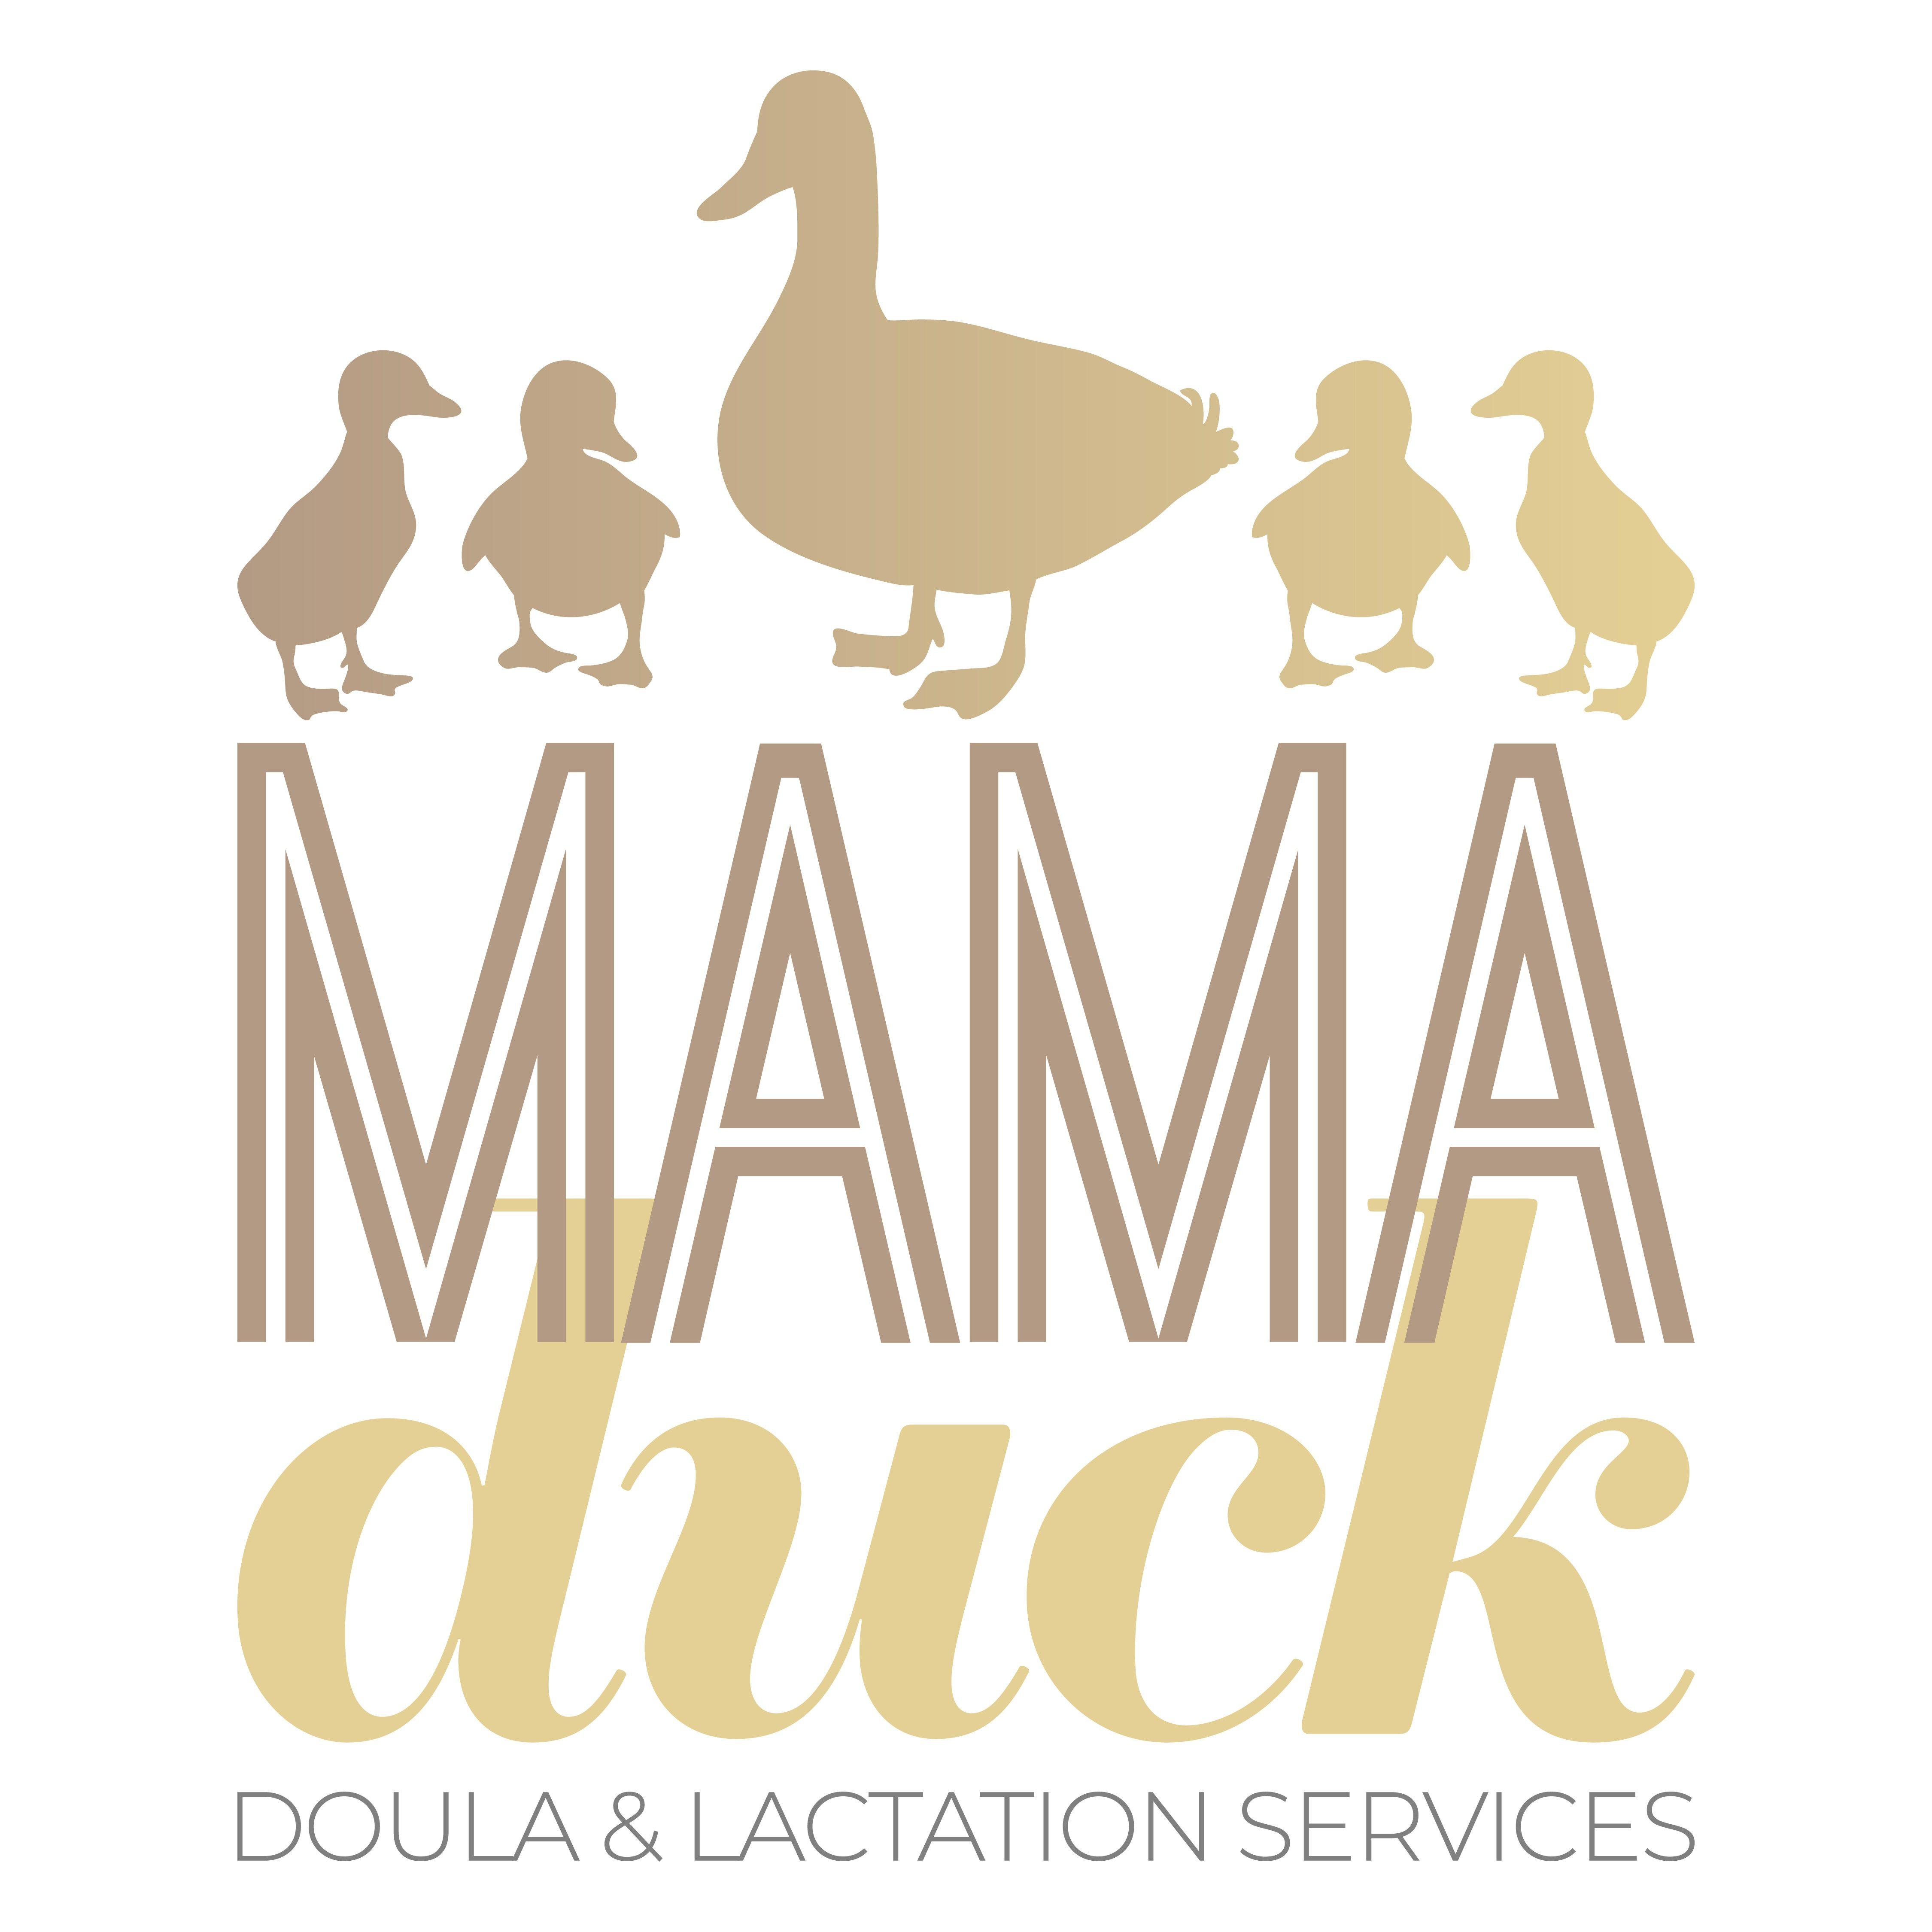 Minnesota Doula, Lactation Consultant, and Car Seat Technician